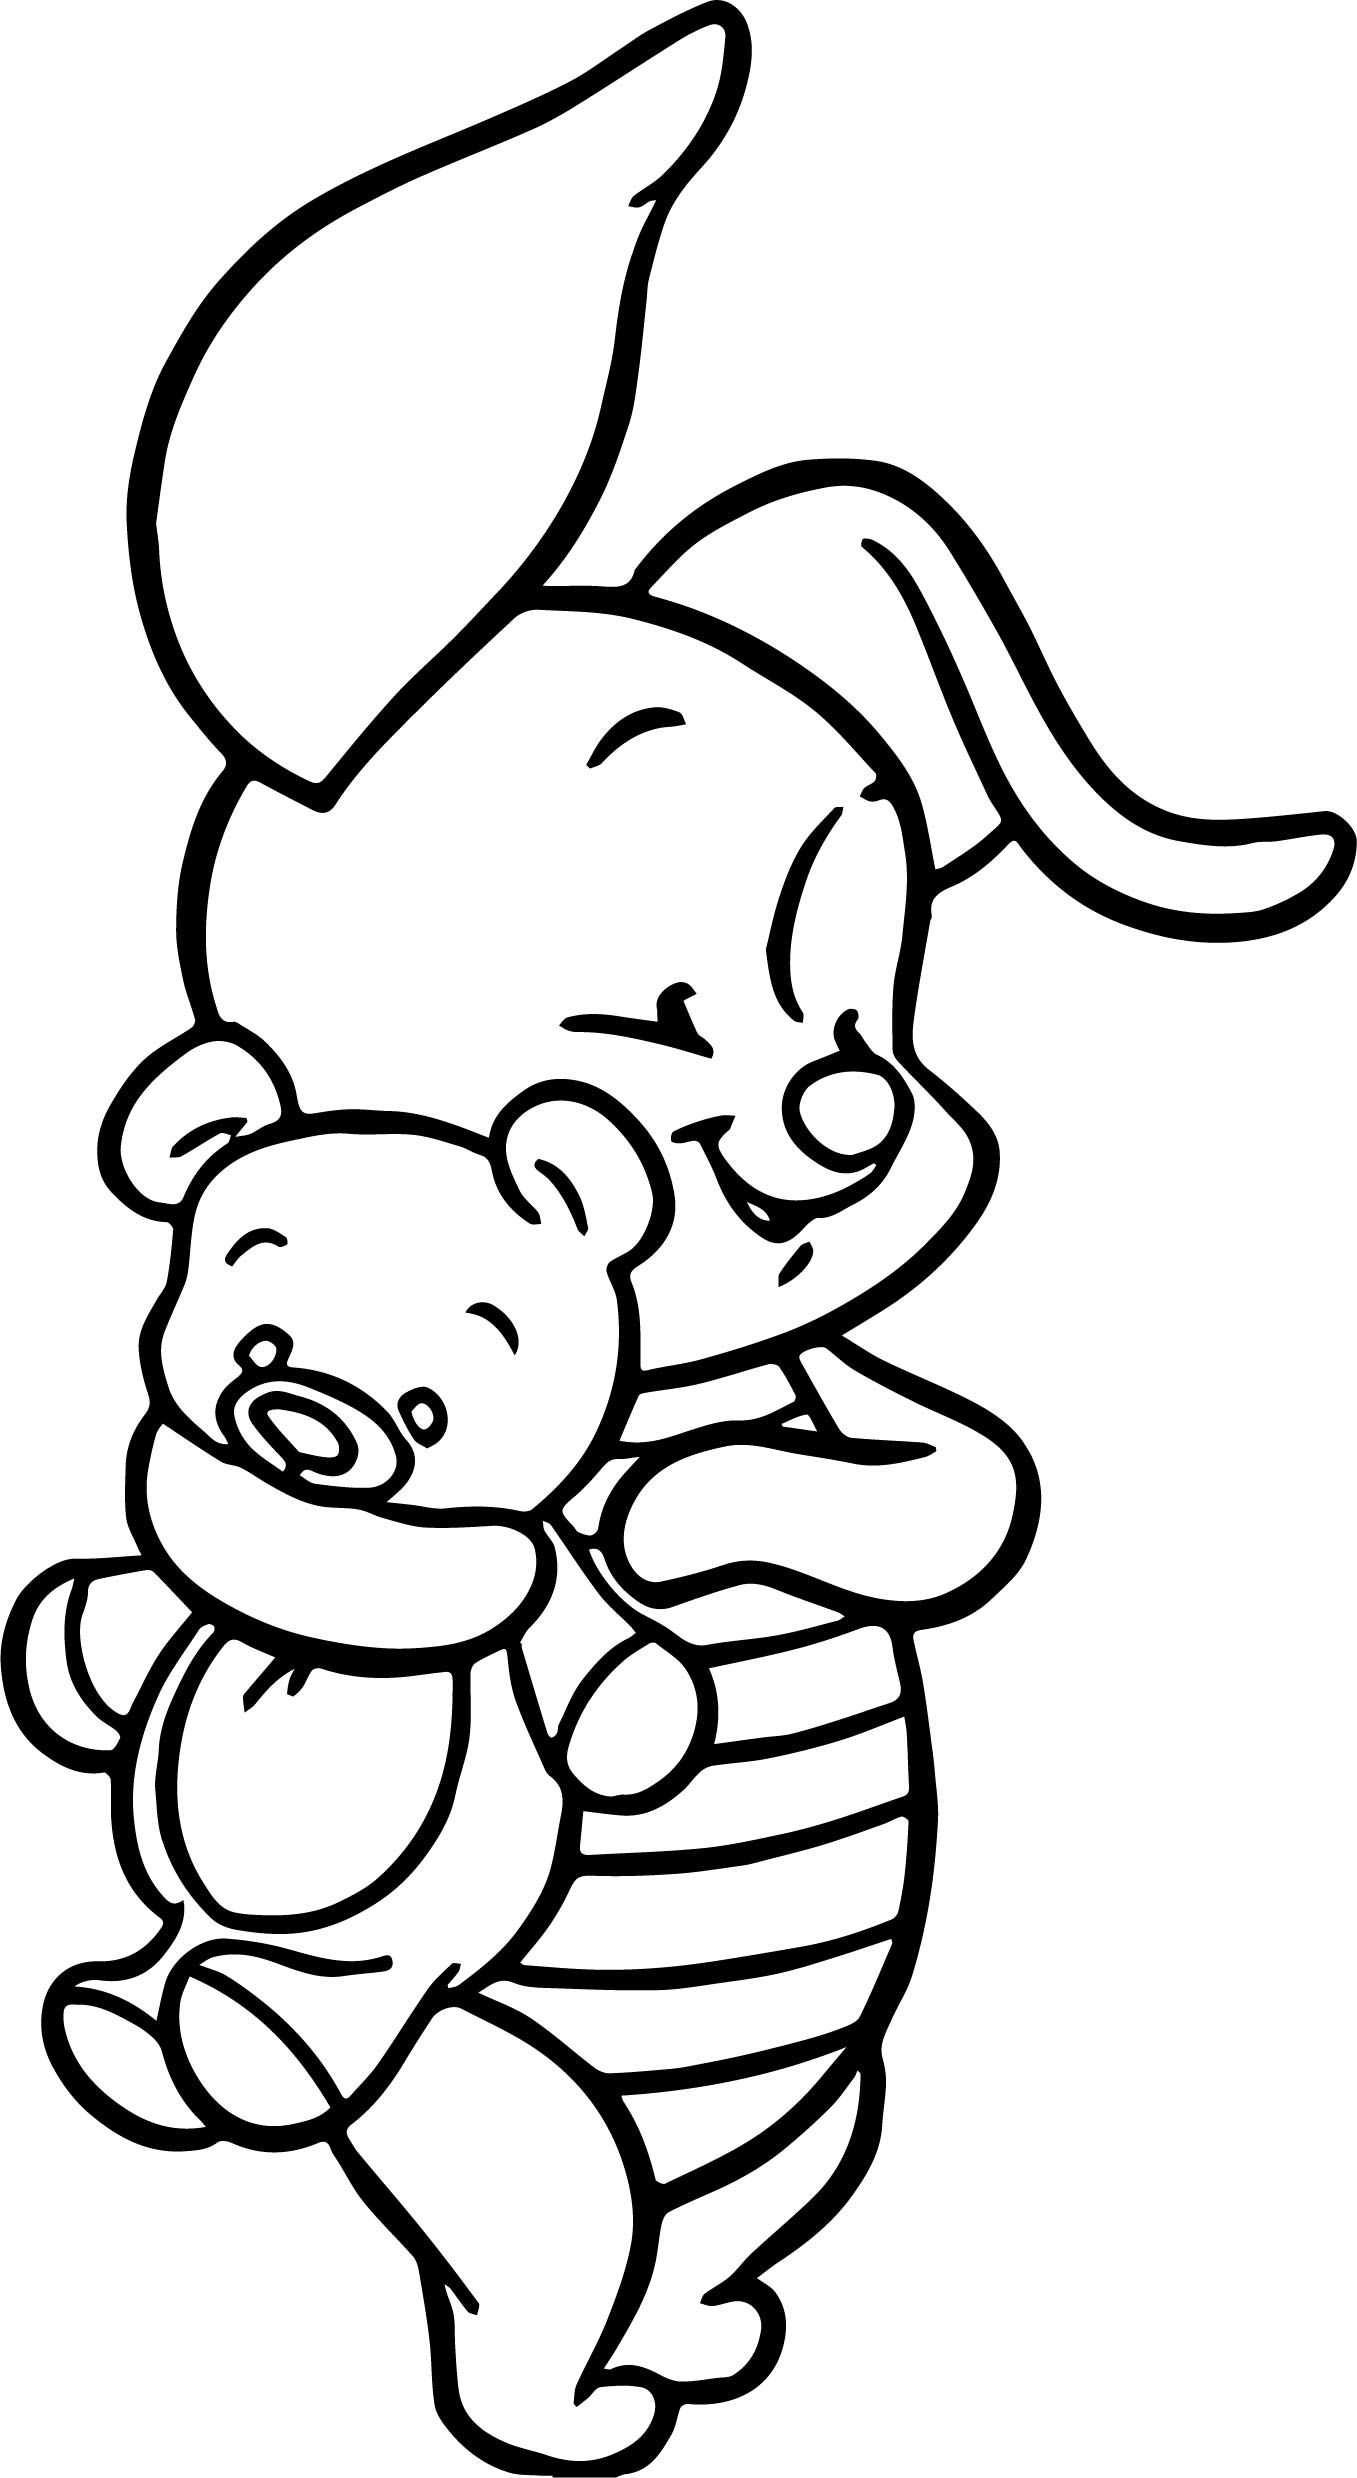 Baby Piglet Coloring Page  Baby coloring pages, Cartoon coloring